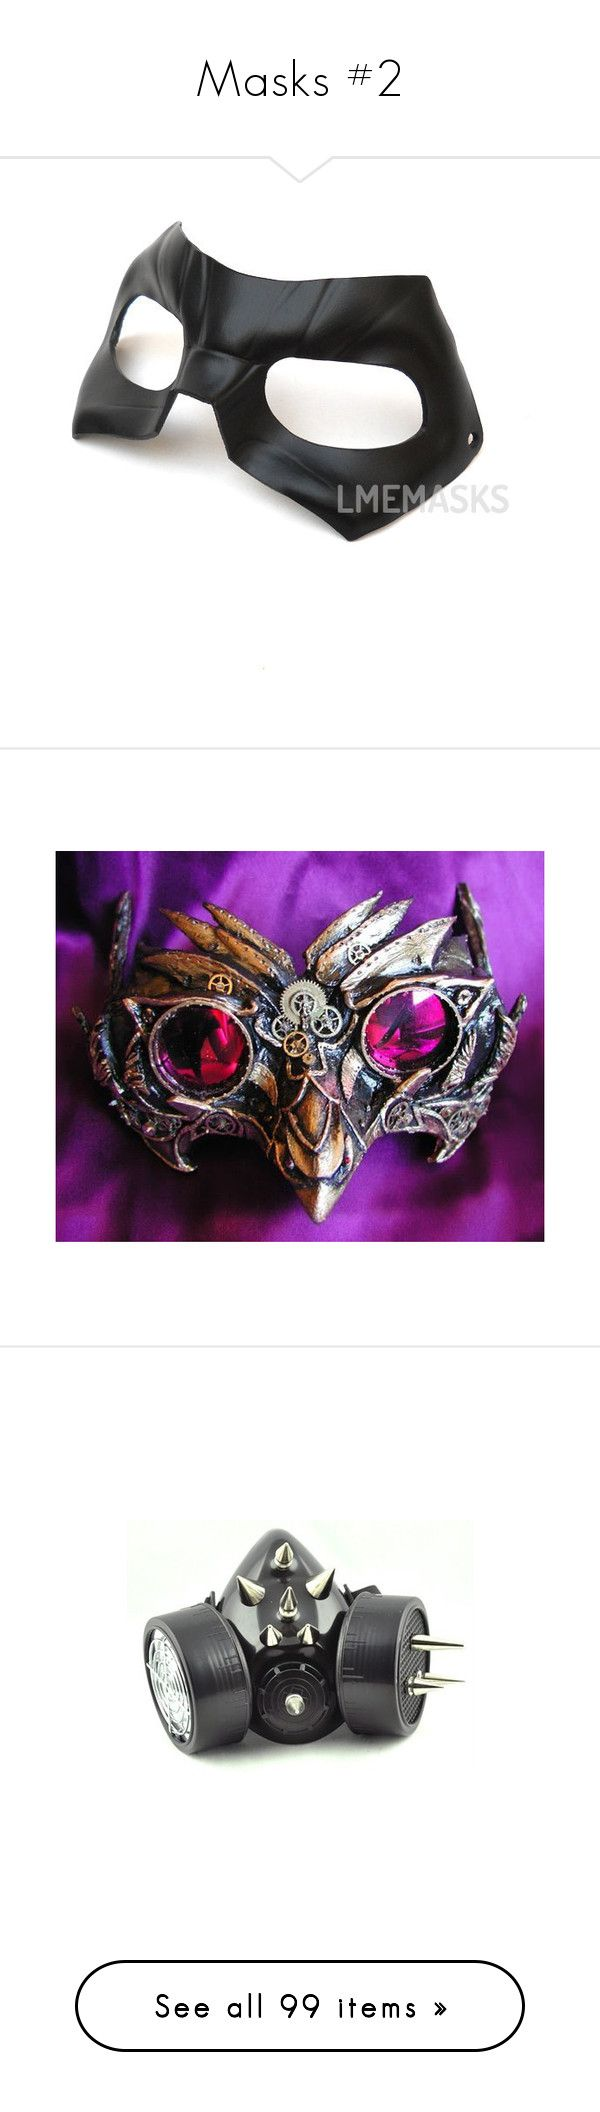 """""""Masks #2"""" by lucy-wolf ❤ liked on Polyvore featuring costumes, carnival costumes, adult superhero costumes, cosplay costumes, superhero cosplay costumes, super heroes comic book, masks, accessories, steampunk and mask"""